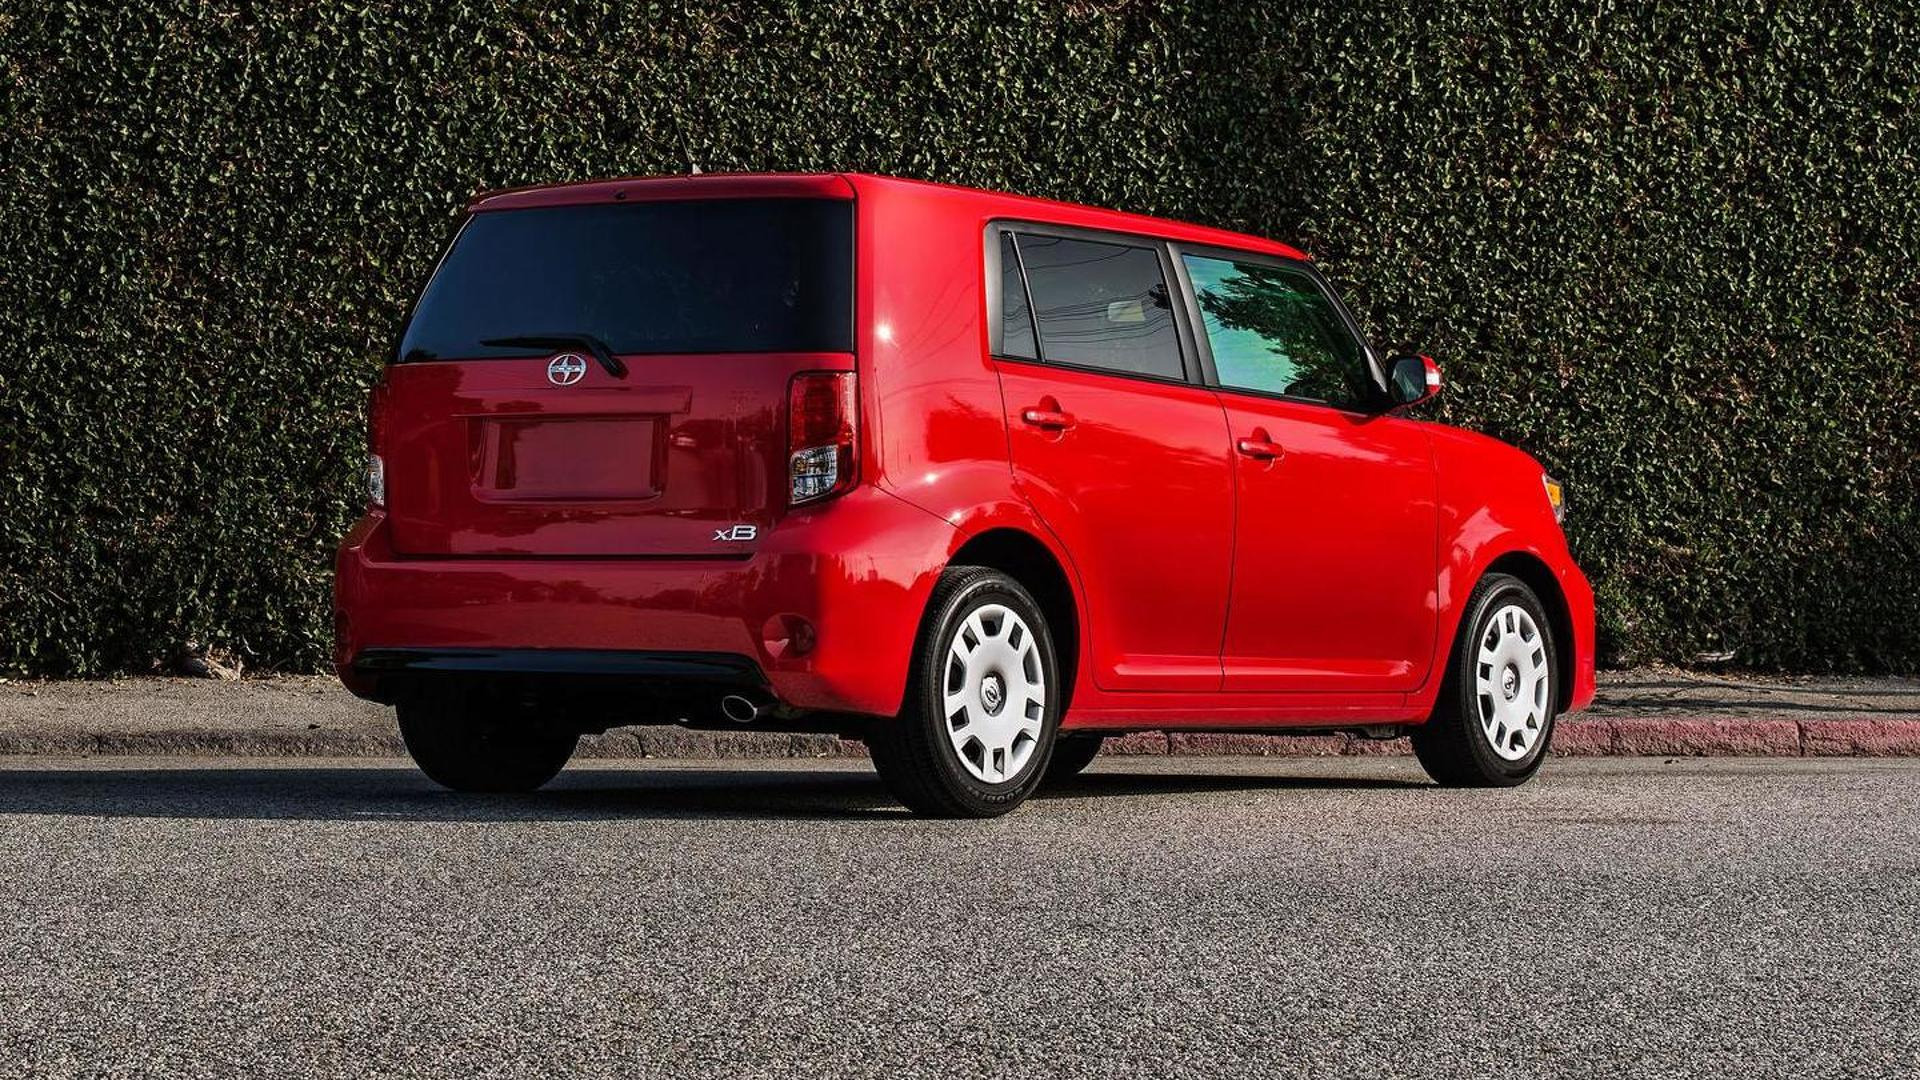 2013 scion xb gets a minor facelift product 2012 12 10 17 51 40